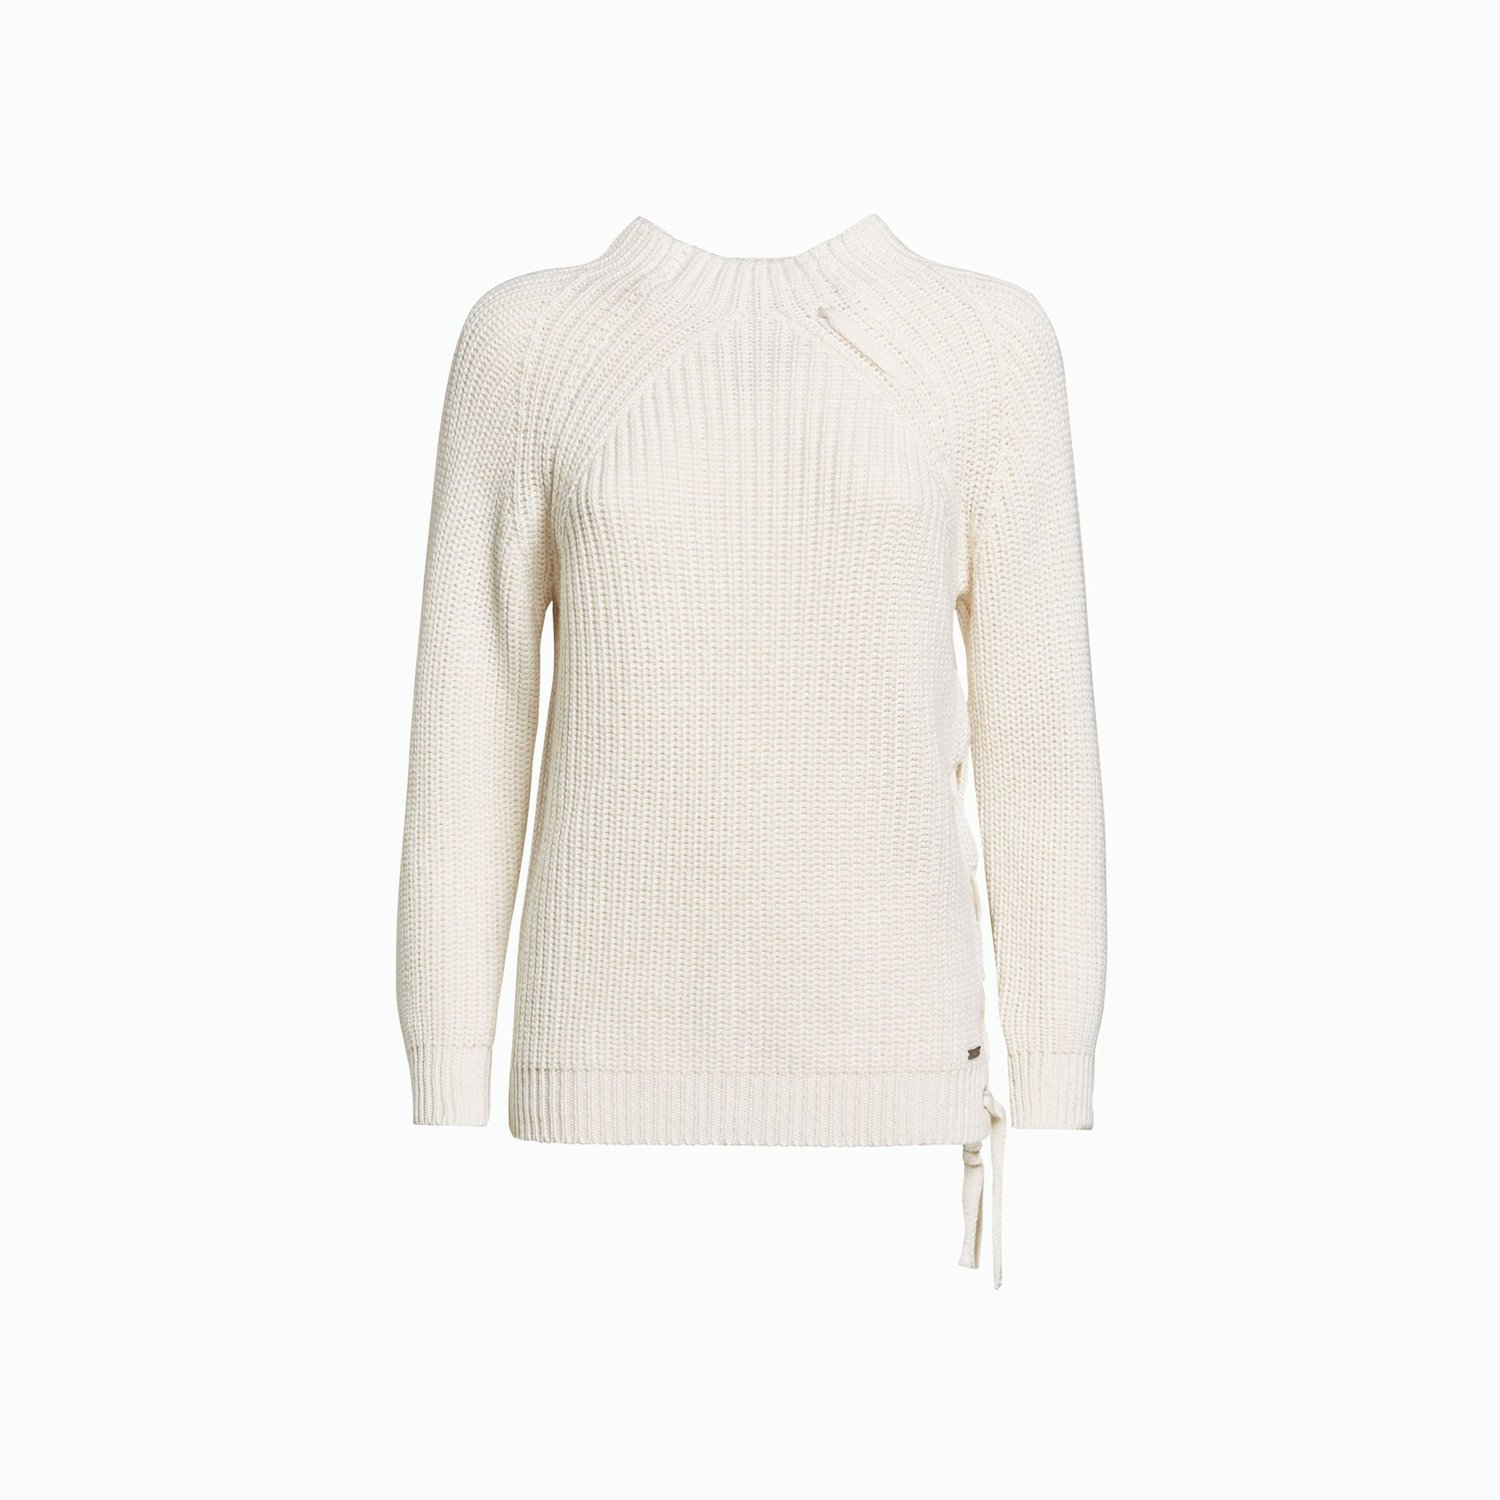 Jumper A161 - Sail White